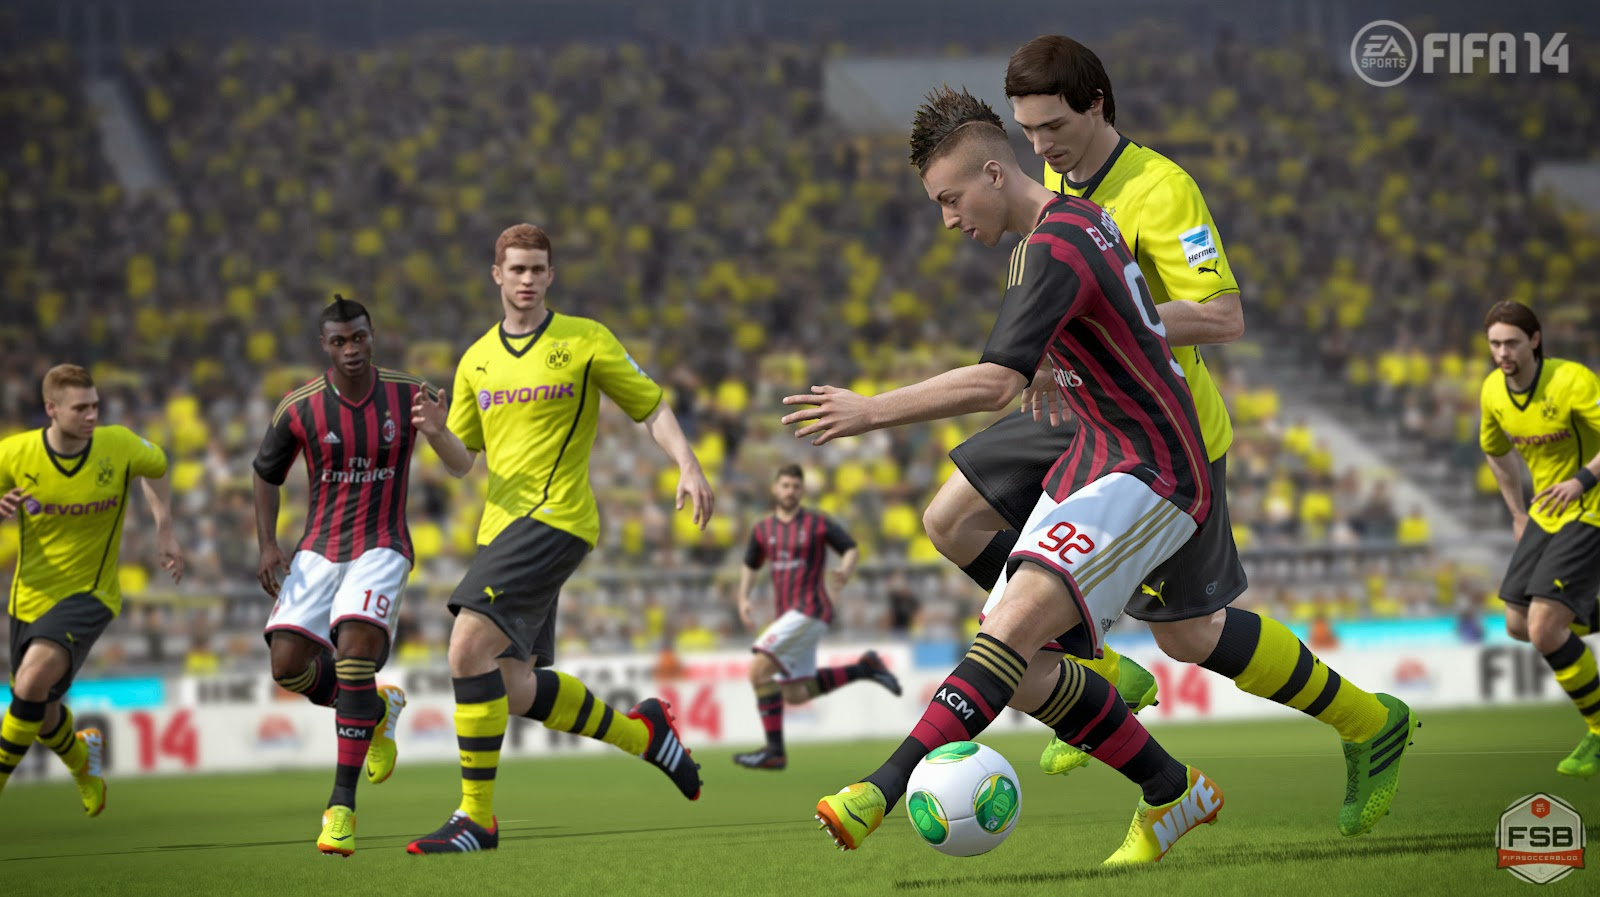 fifa 2014 pc free full download